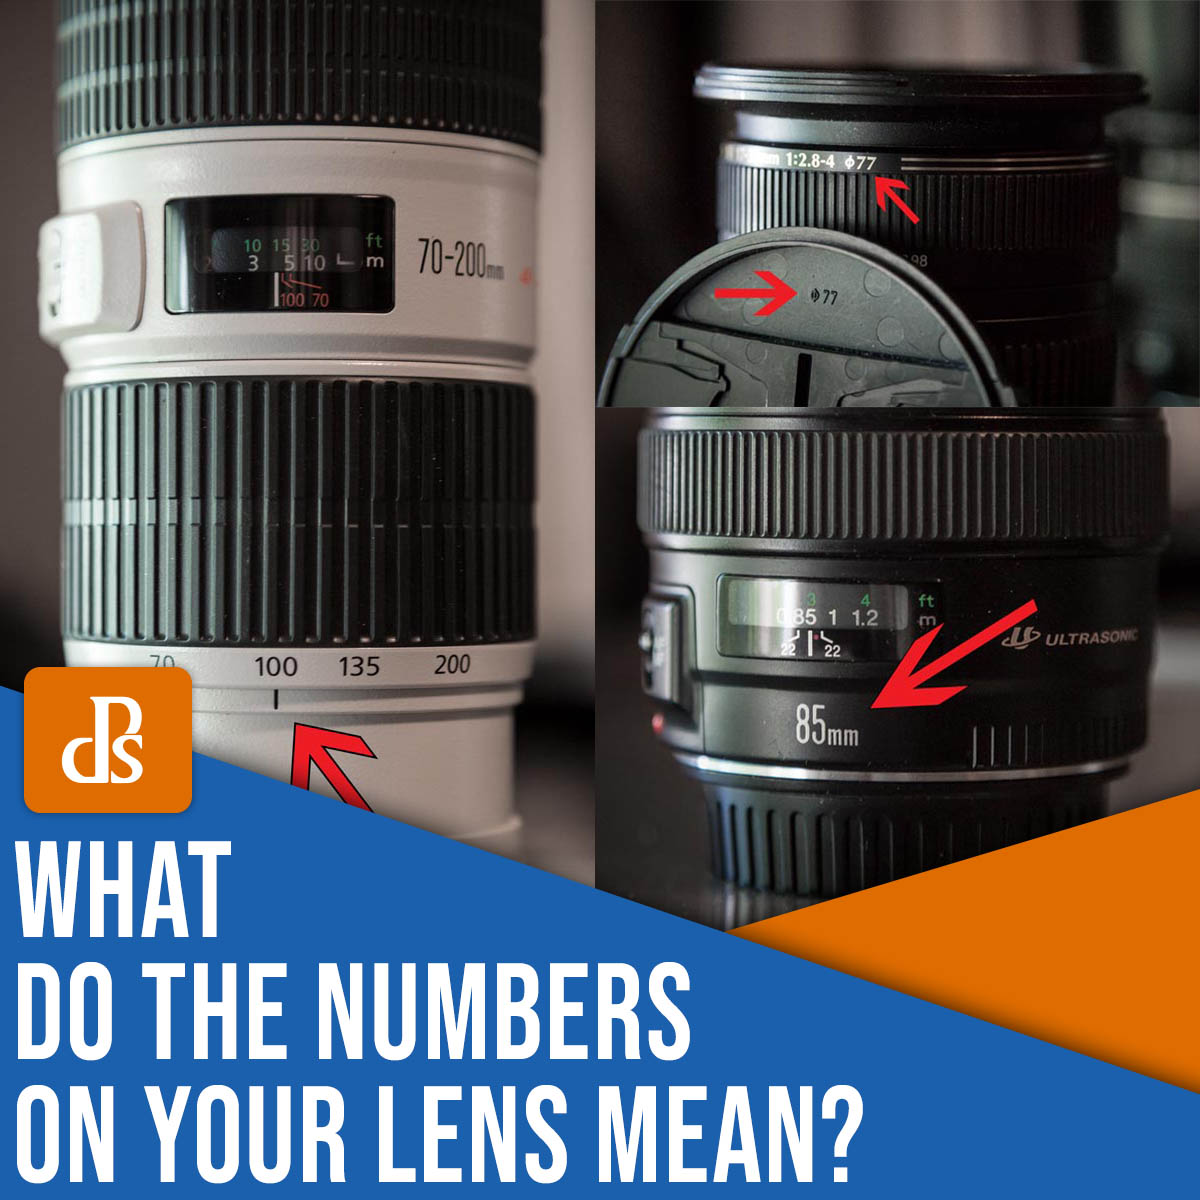 what do the numbers on your camera lens mean?